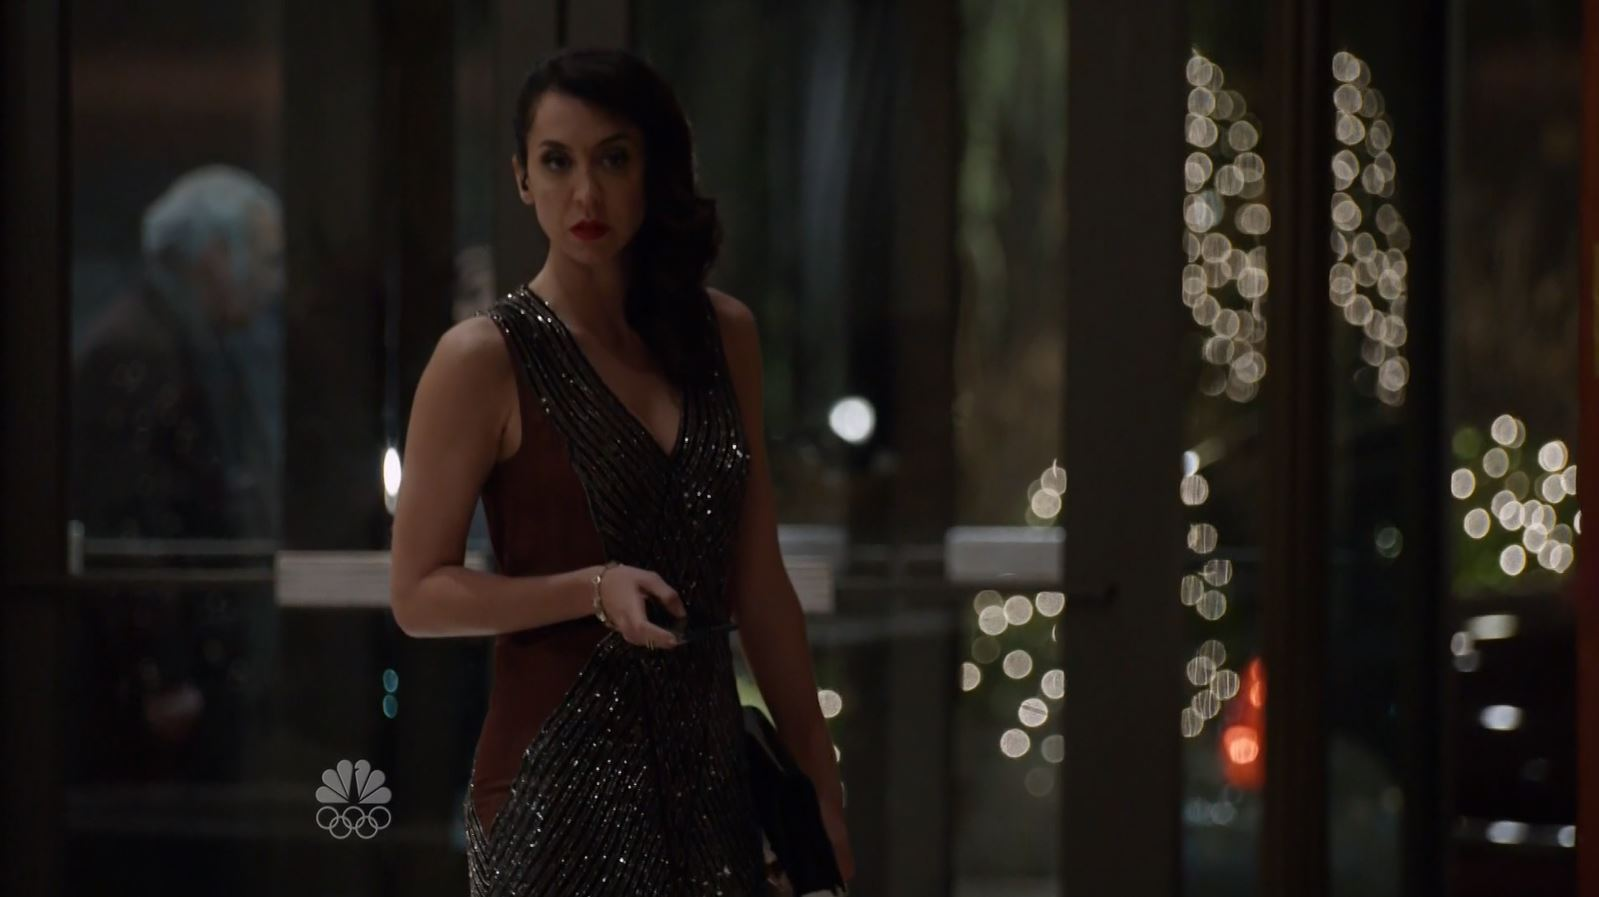 Mozhan Marnò in cocktail dress. The Blacklist S3Ep13 Alistair Pitt Review